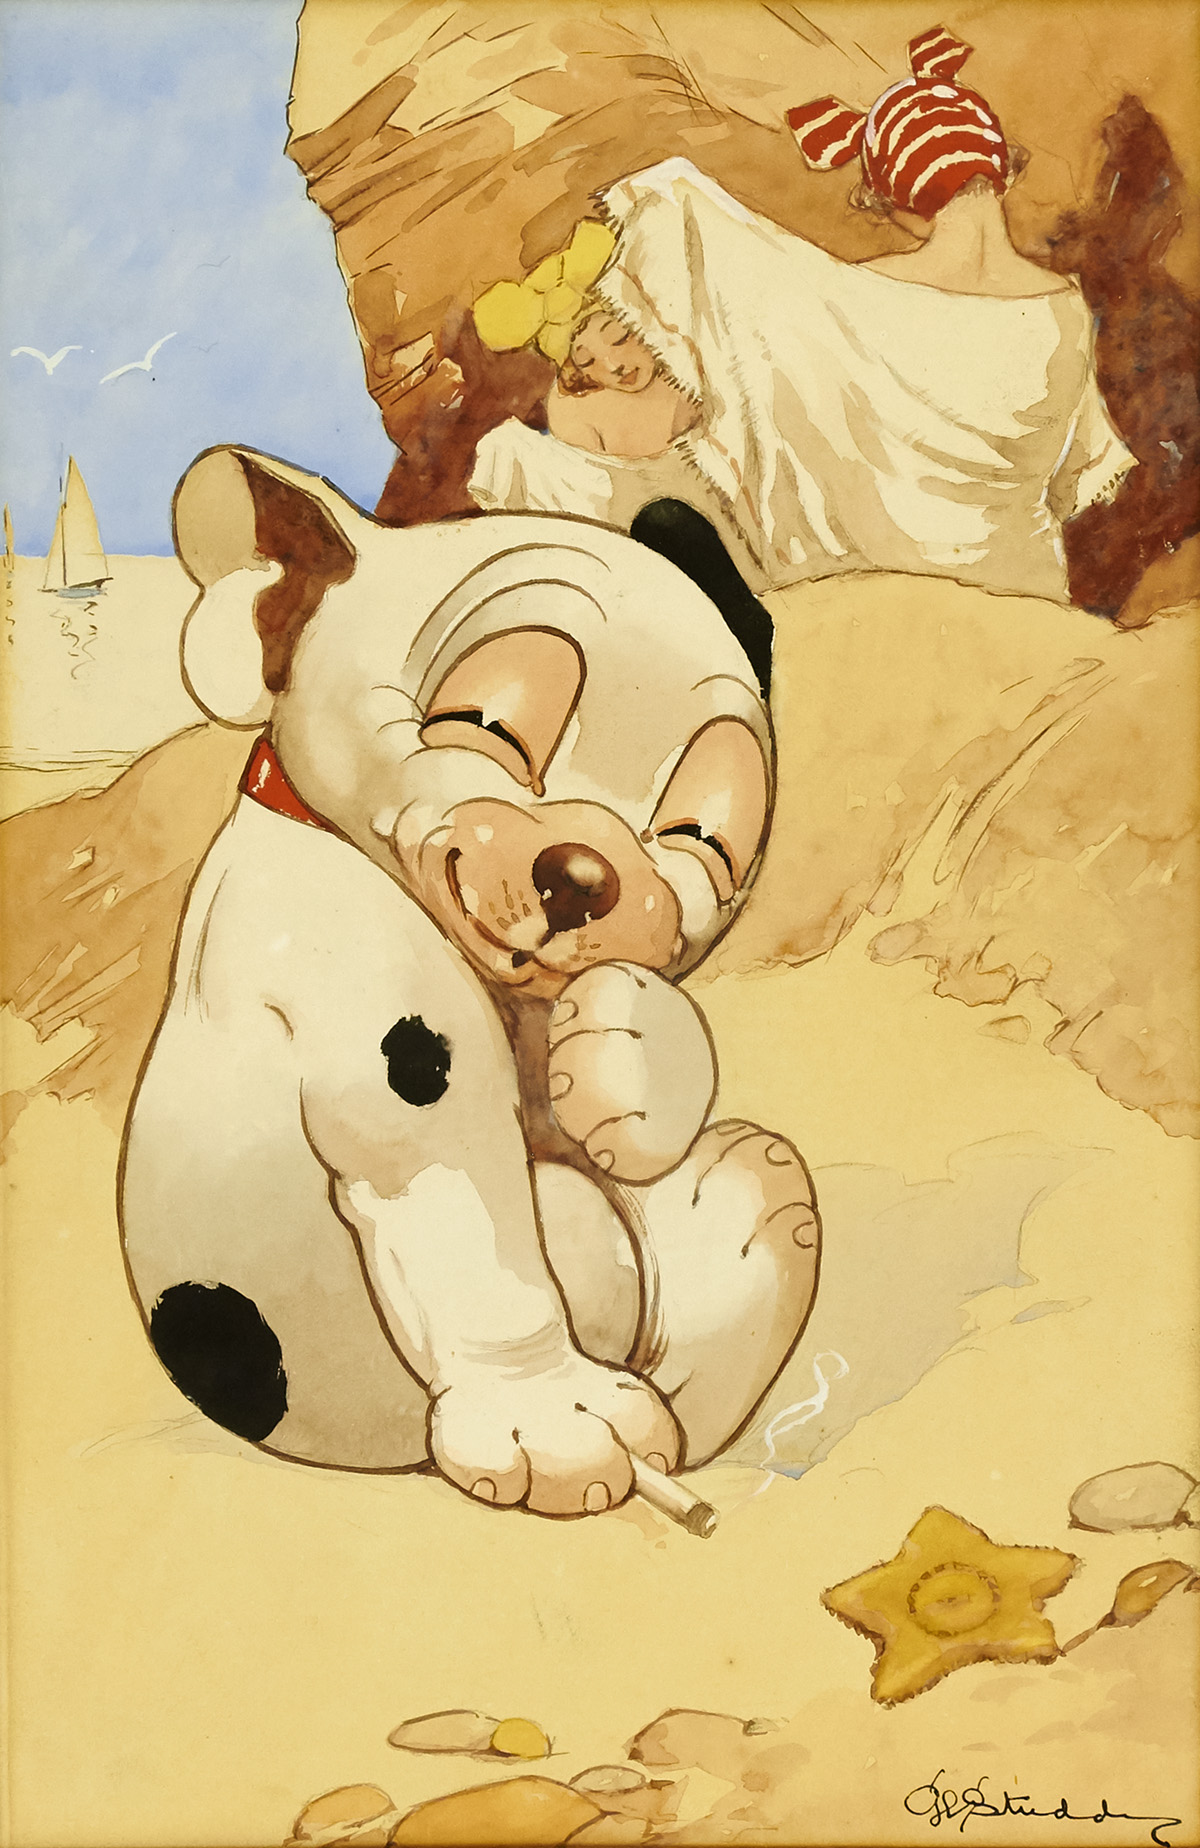 GEORGE E. STUDDY. Nothing to Write Home About. [DOGS /BONZO /POSTCARD]